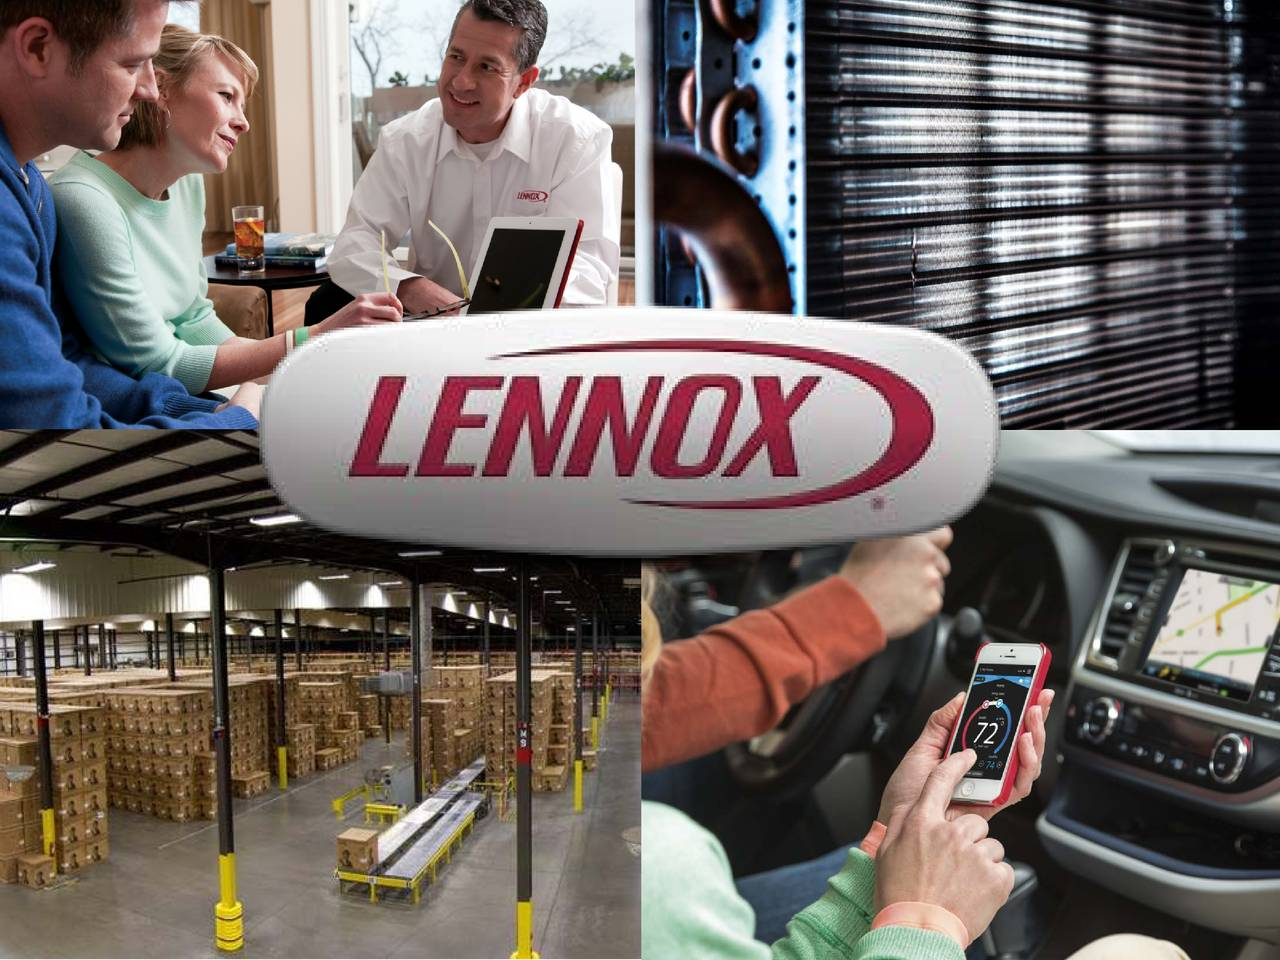 lennox chat sites Lennox, ca chat : are you from lennox-ca you are very welcome to join our weirdtowncom chat lennox, ca chat is the place where lennox-ca chatters come to chat with anyone from anywhere.